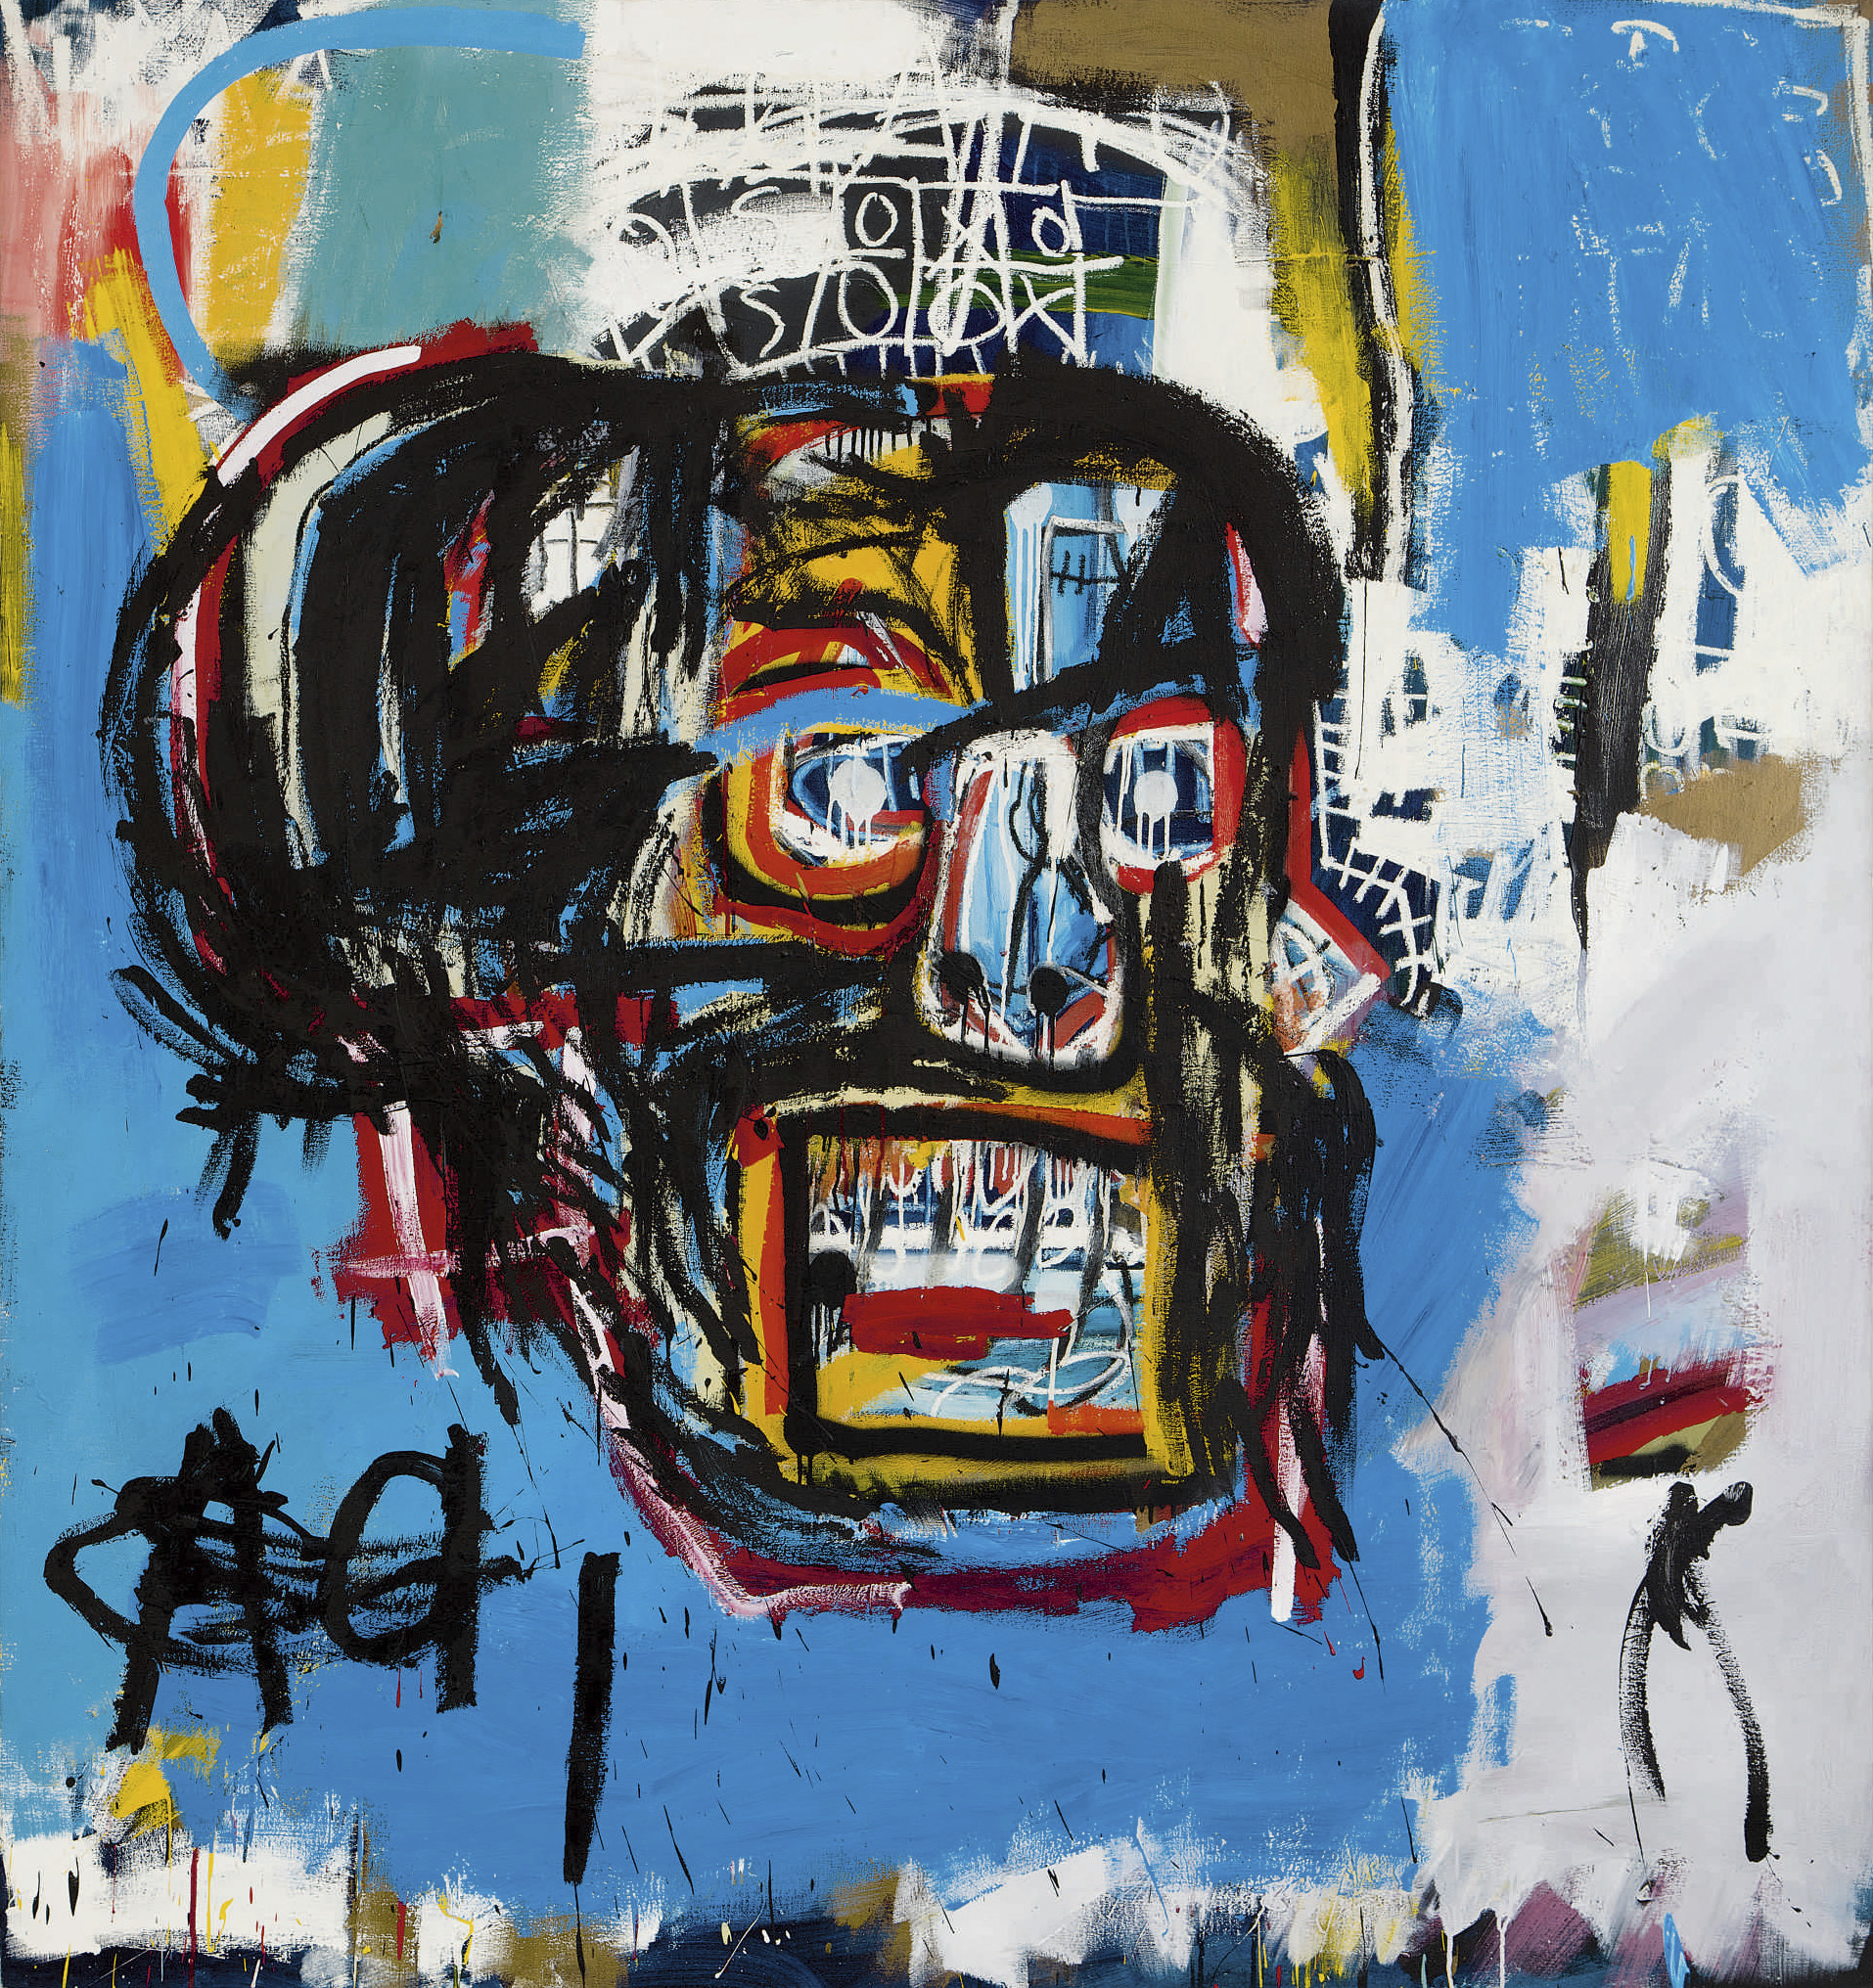 Basquiat Painting Sells For A Record 110 5 Million Fortune